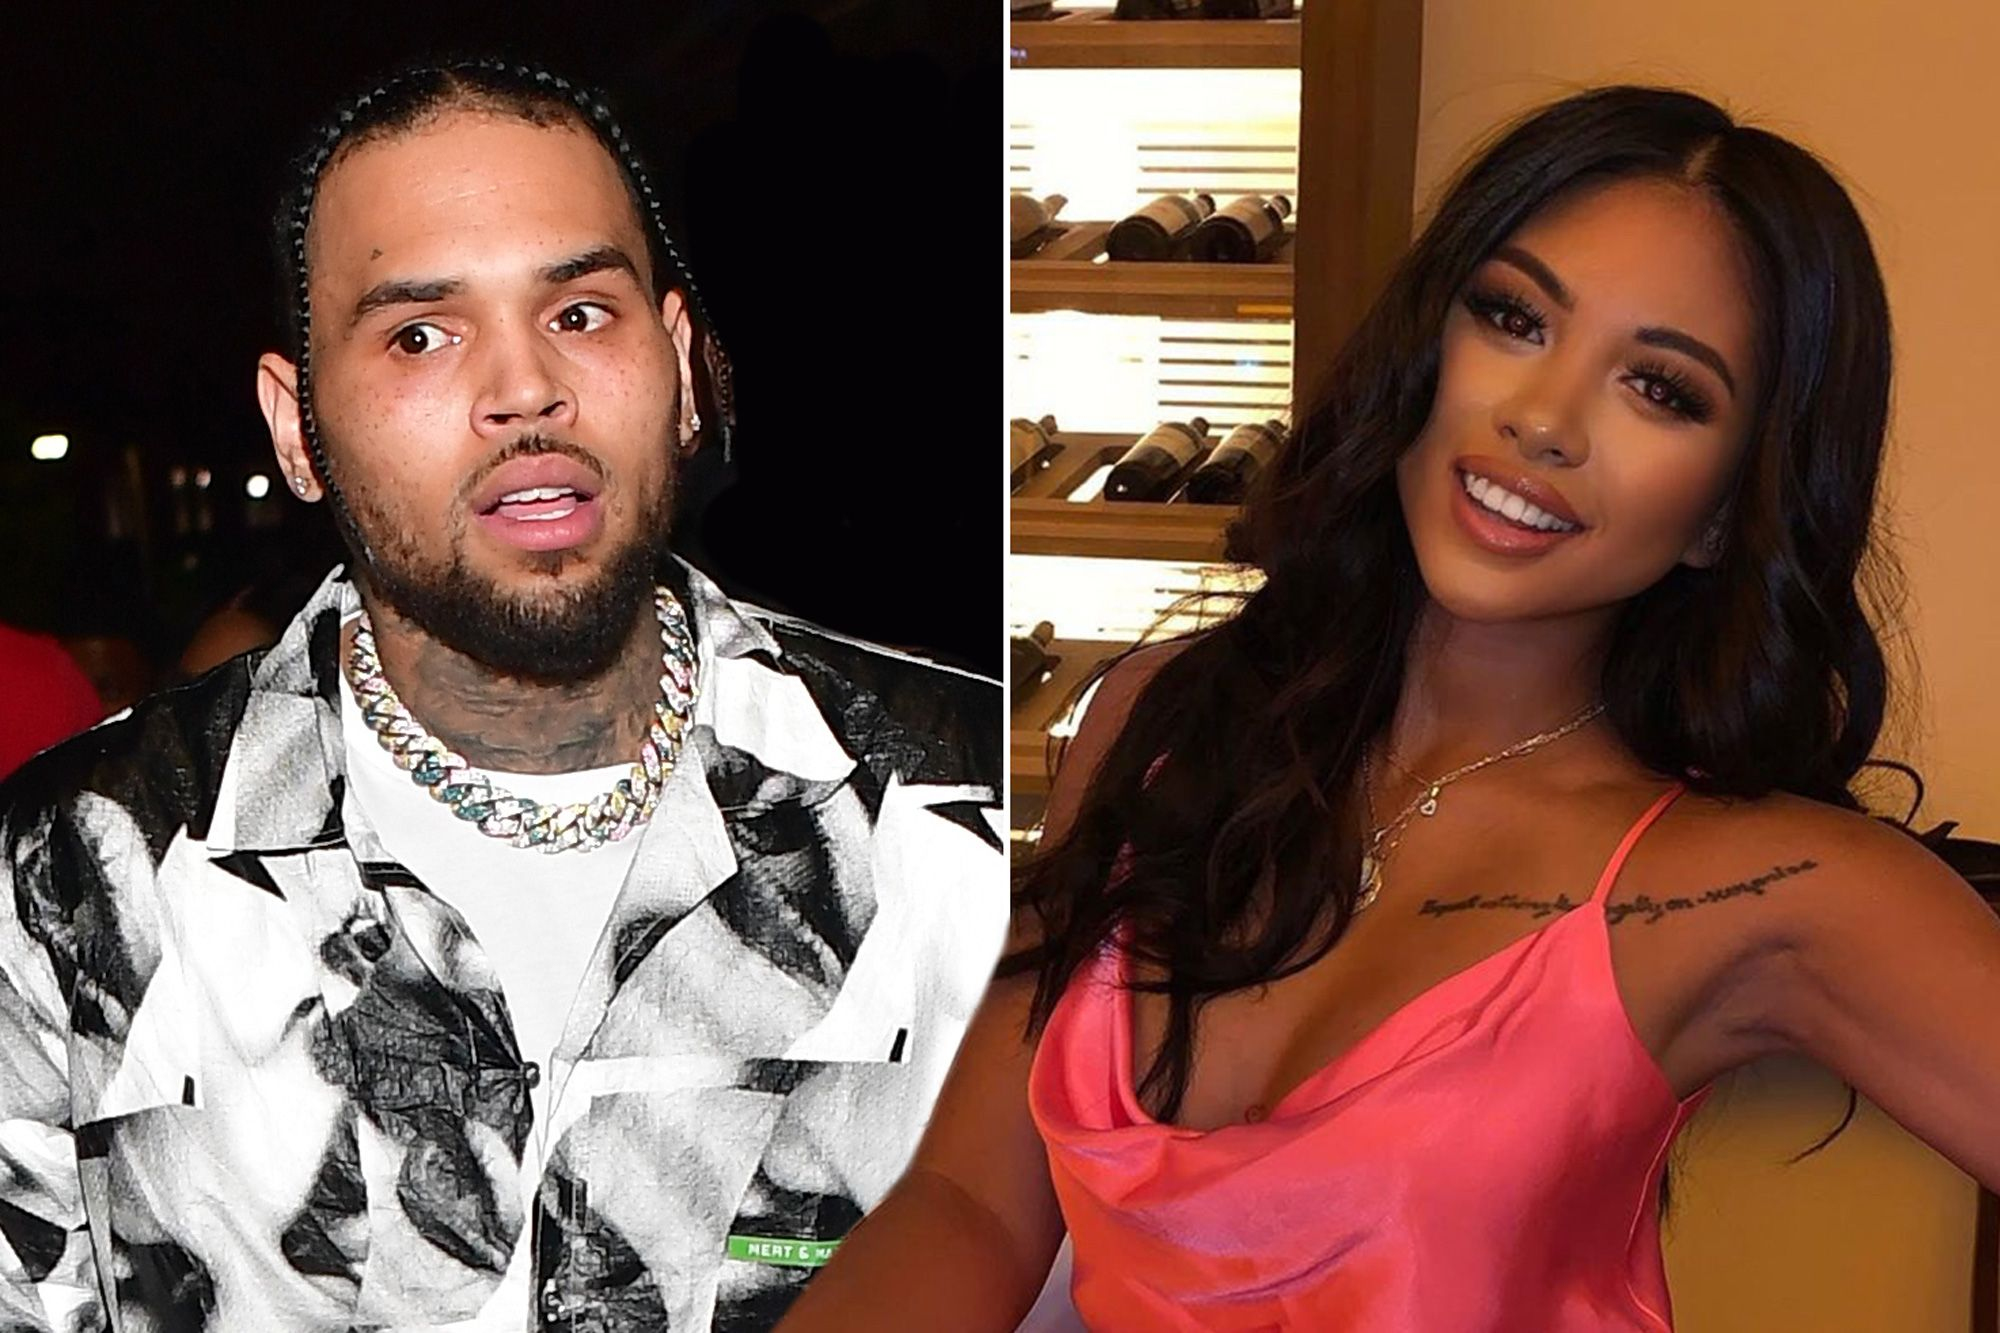 chris-brown-and-ammika-harris-no-longer-follow-each-other-on-social-media-heres-why